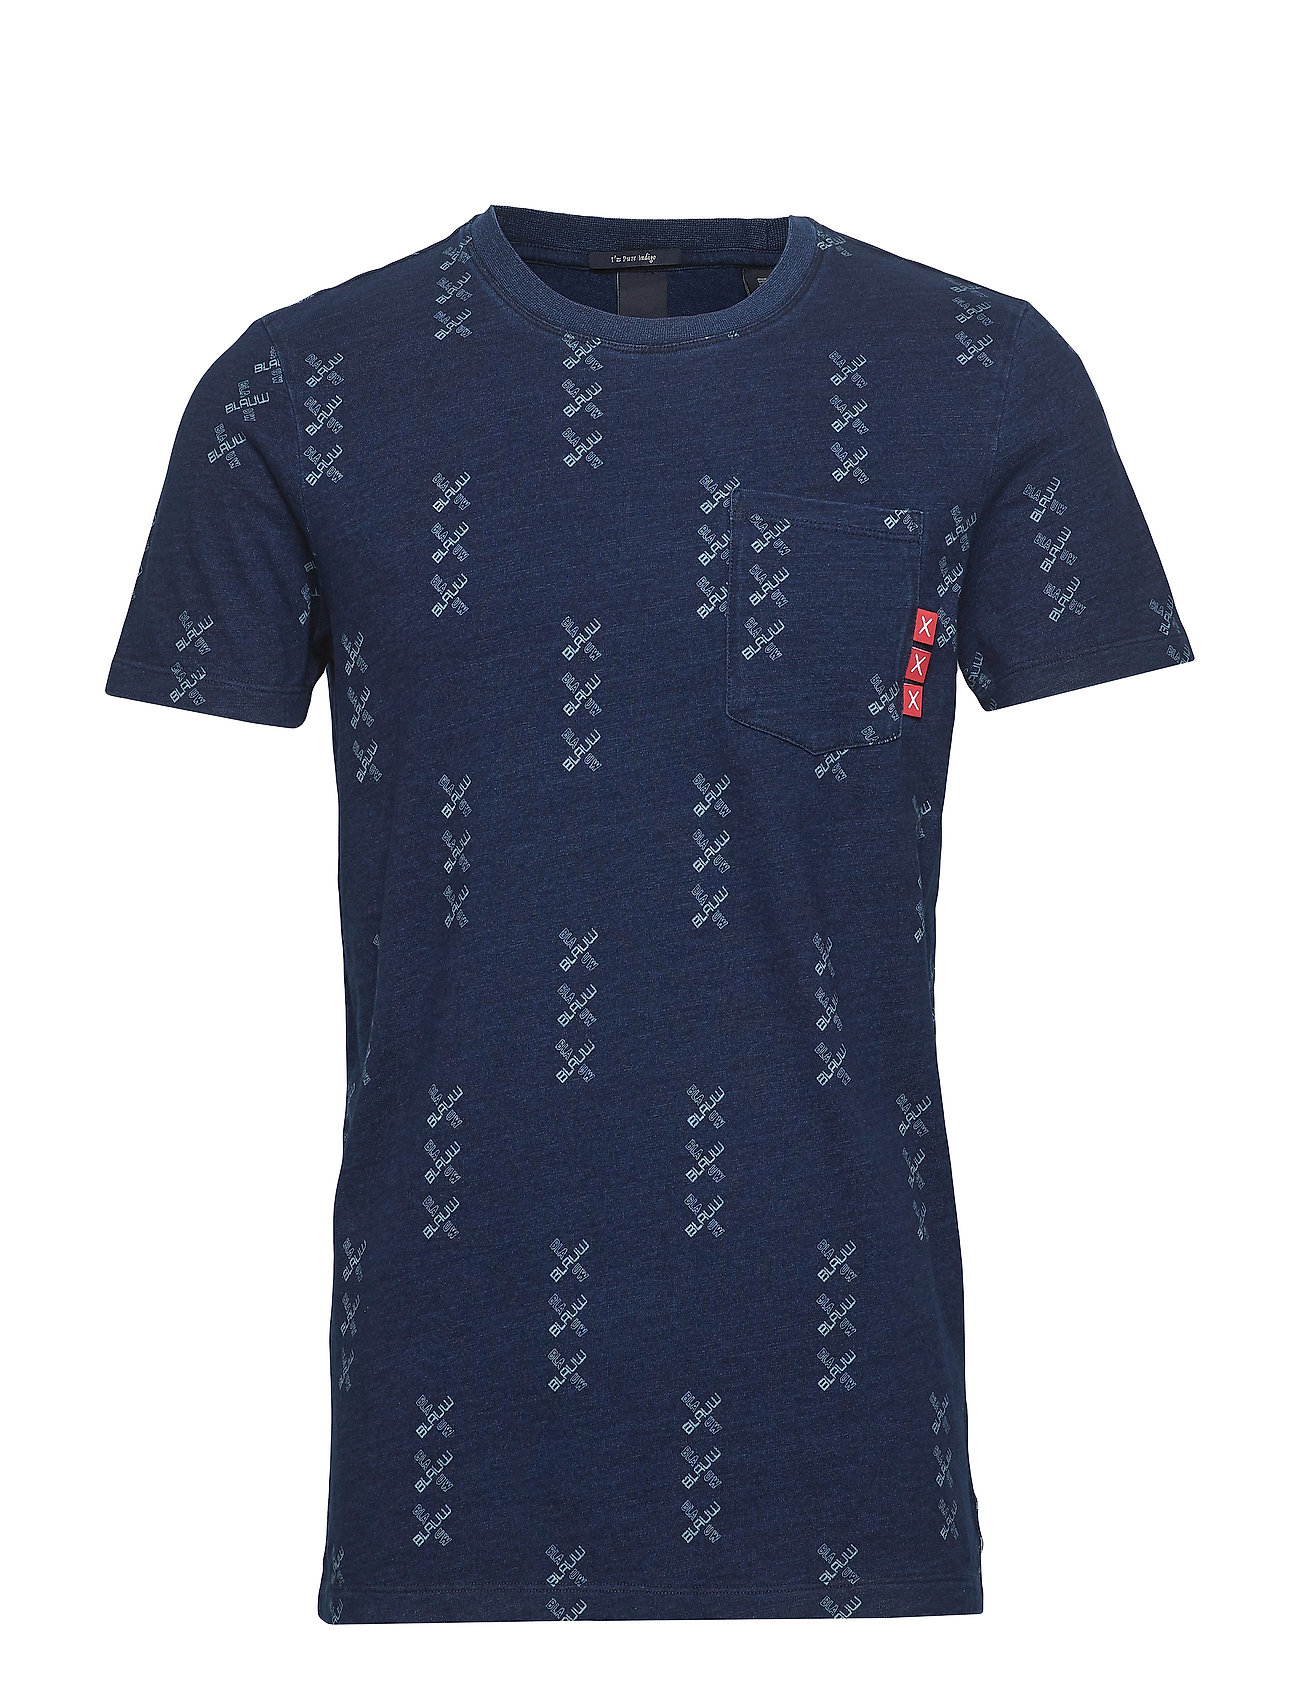 Scotch & Soda Ams Blauw indigo tee with washing and AOP in regular fit - COMBO B